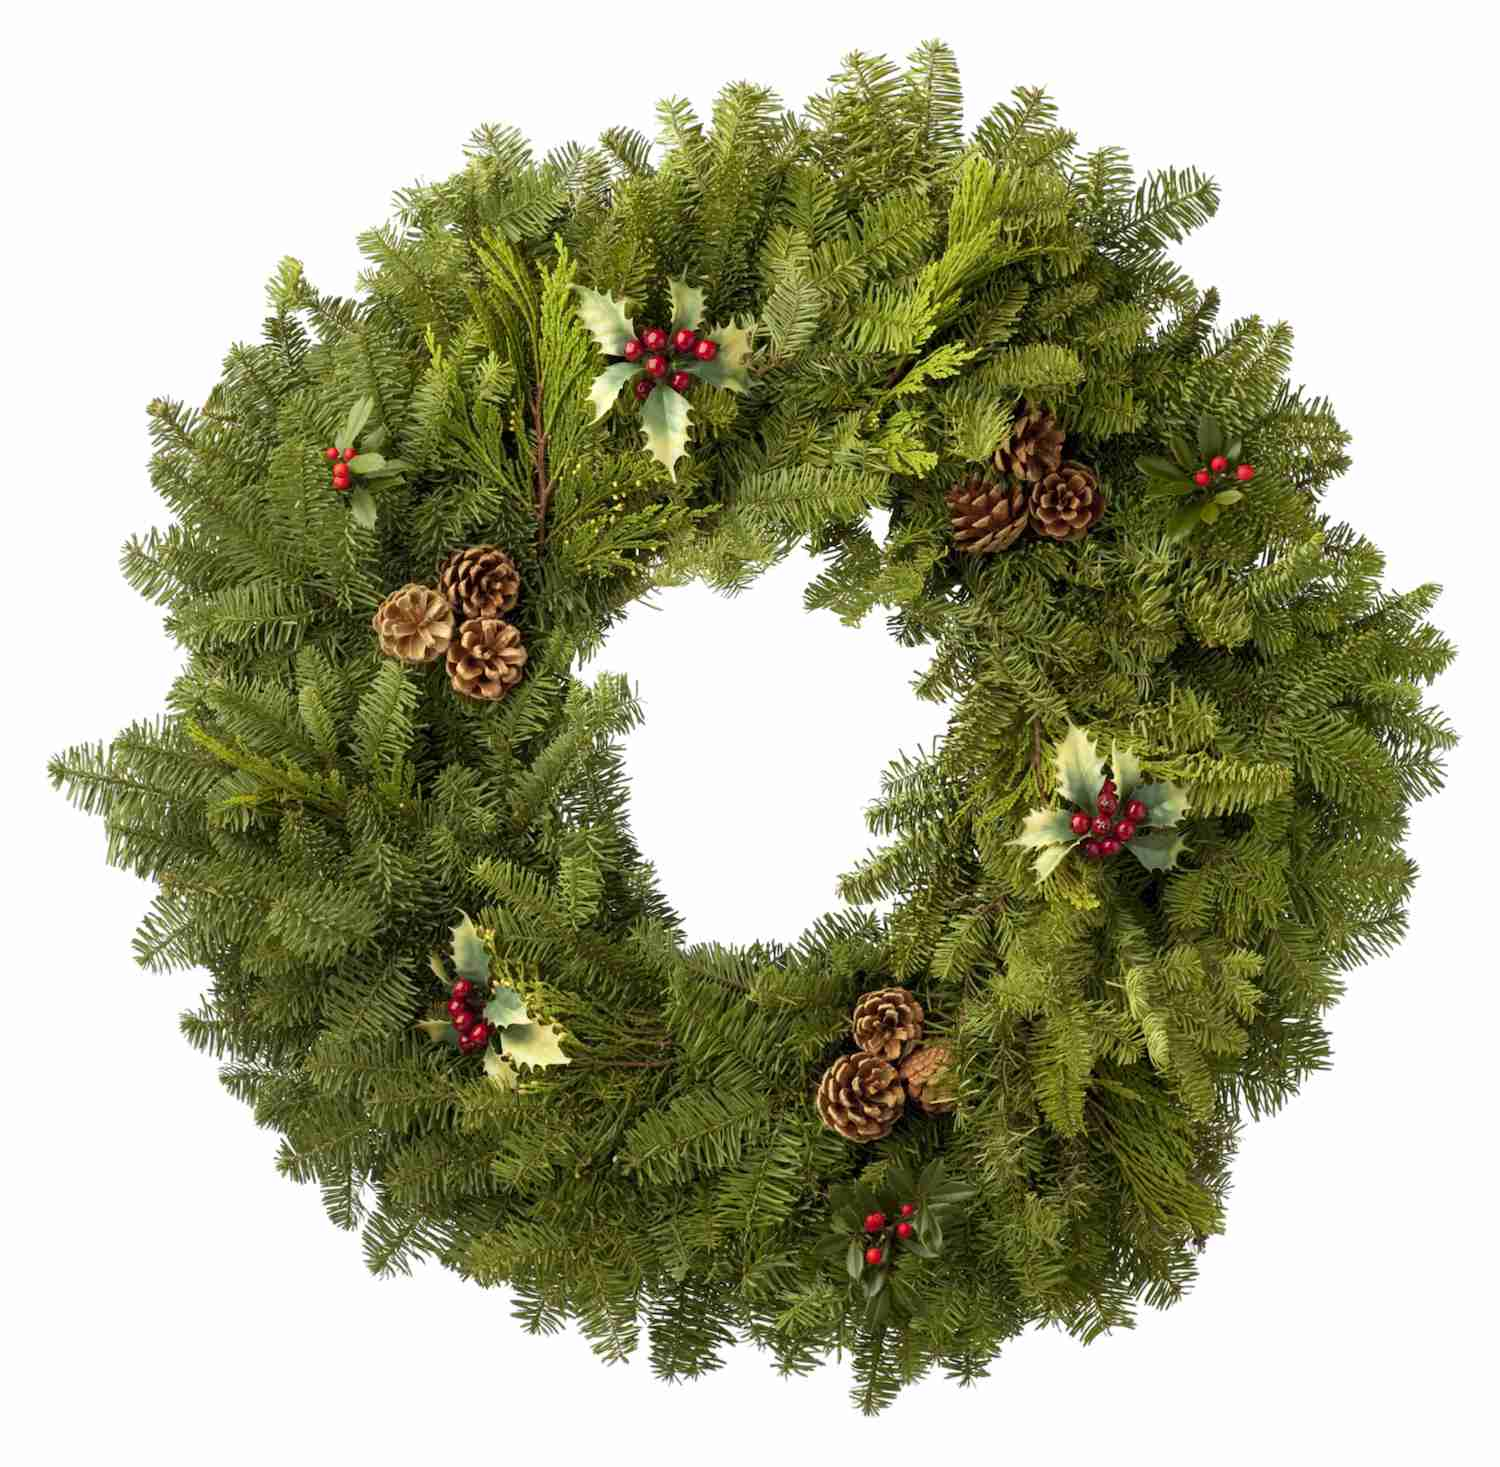 5 Easy Yule Decorations